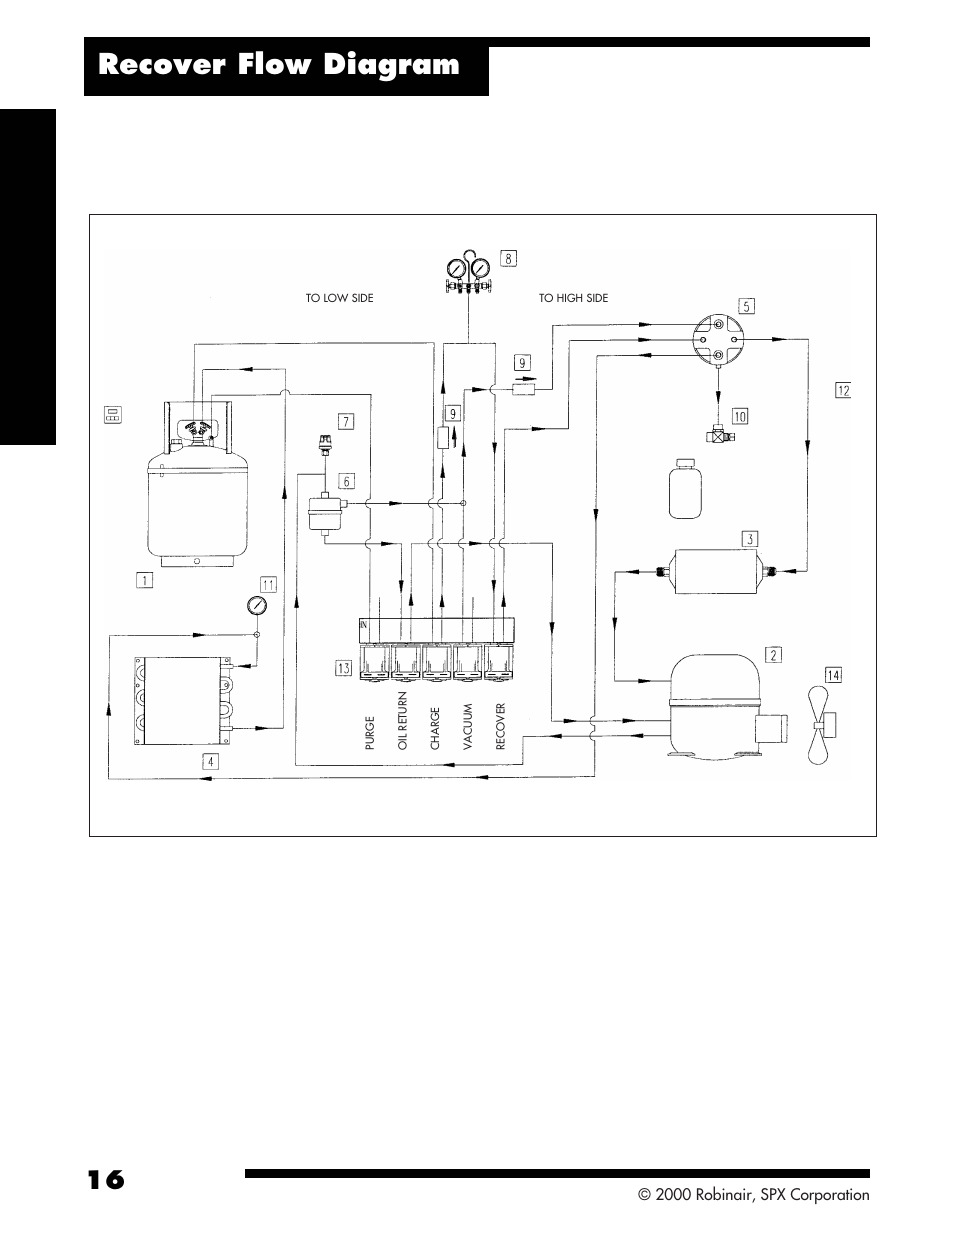 Refrigerant Recycling Diagram Electrical Wiring Diagrams Robinair Ac Unit Recover Flow 34134 2k Recovery Machine